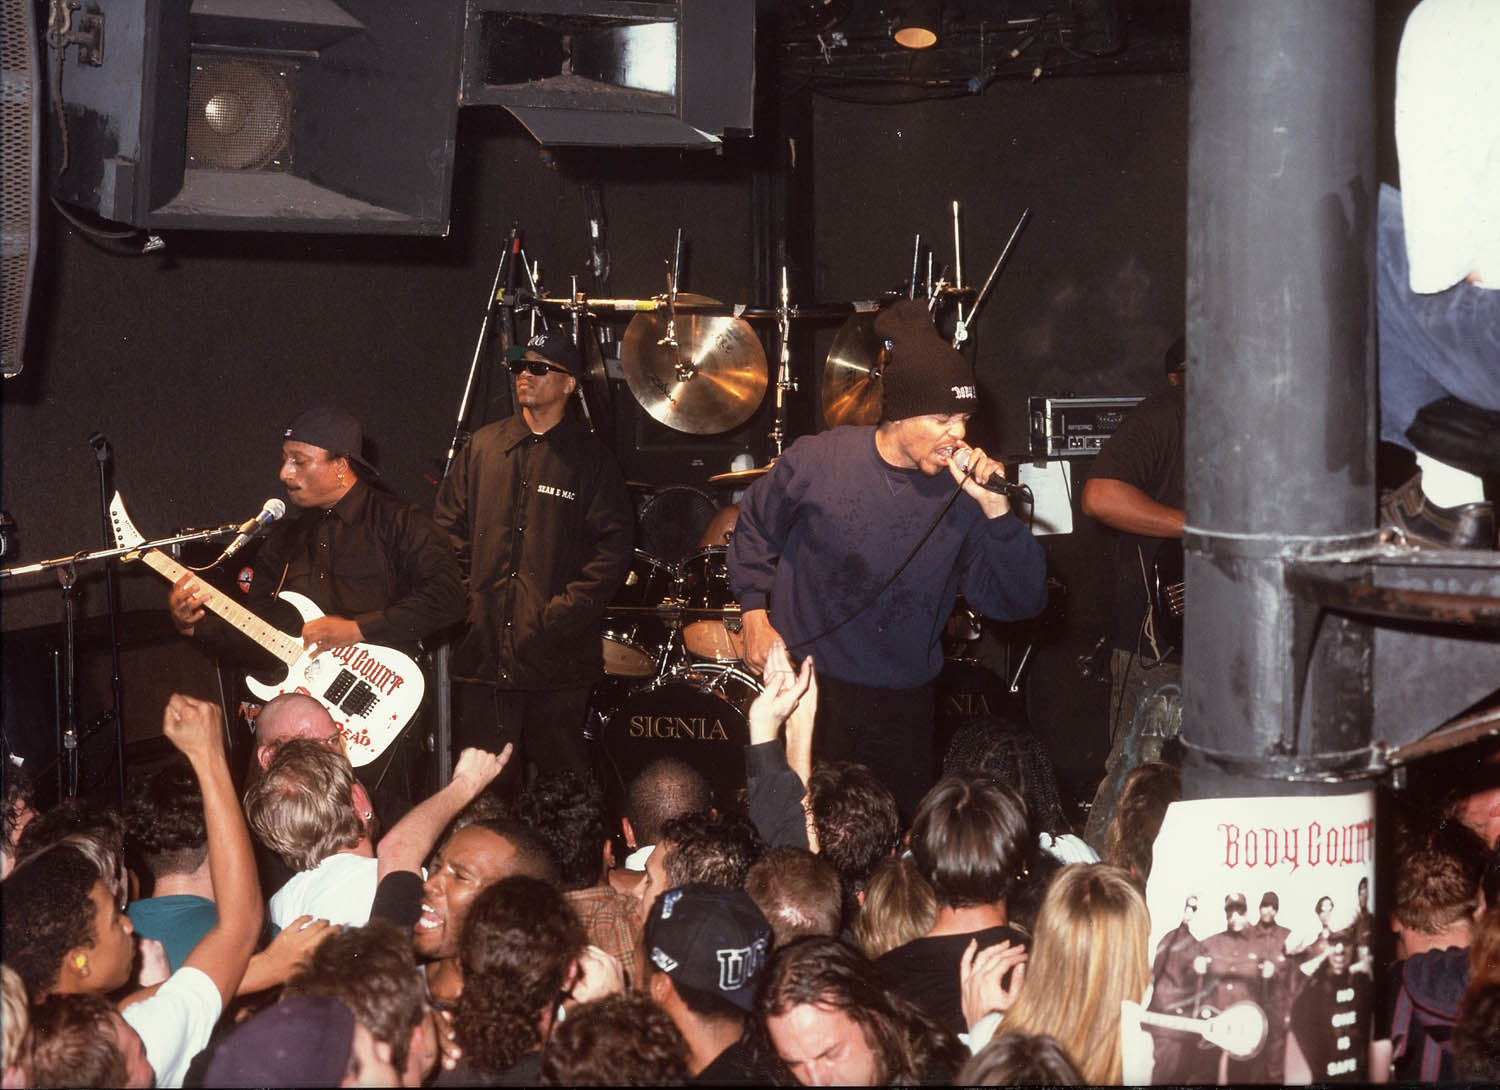 This photo of Body Count is an example of getting to know the size of the room, where you can and cannot shoot from, the size of the stage and the kinds of stage lighting. Photo by Leon Armour Jr./Visual Stimuli Studios